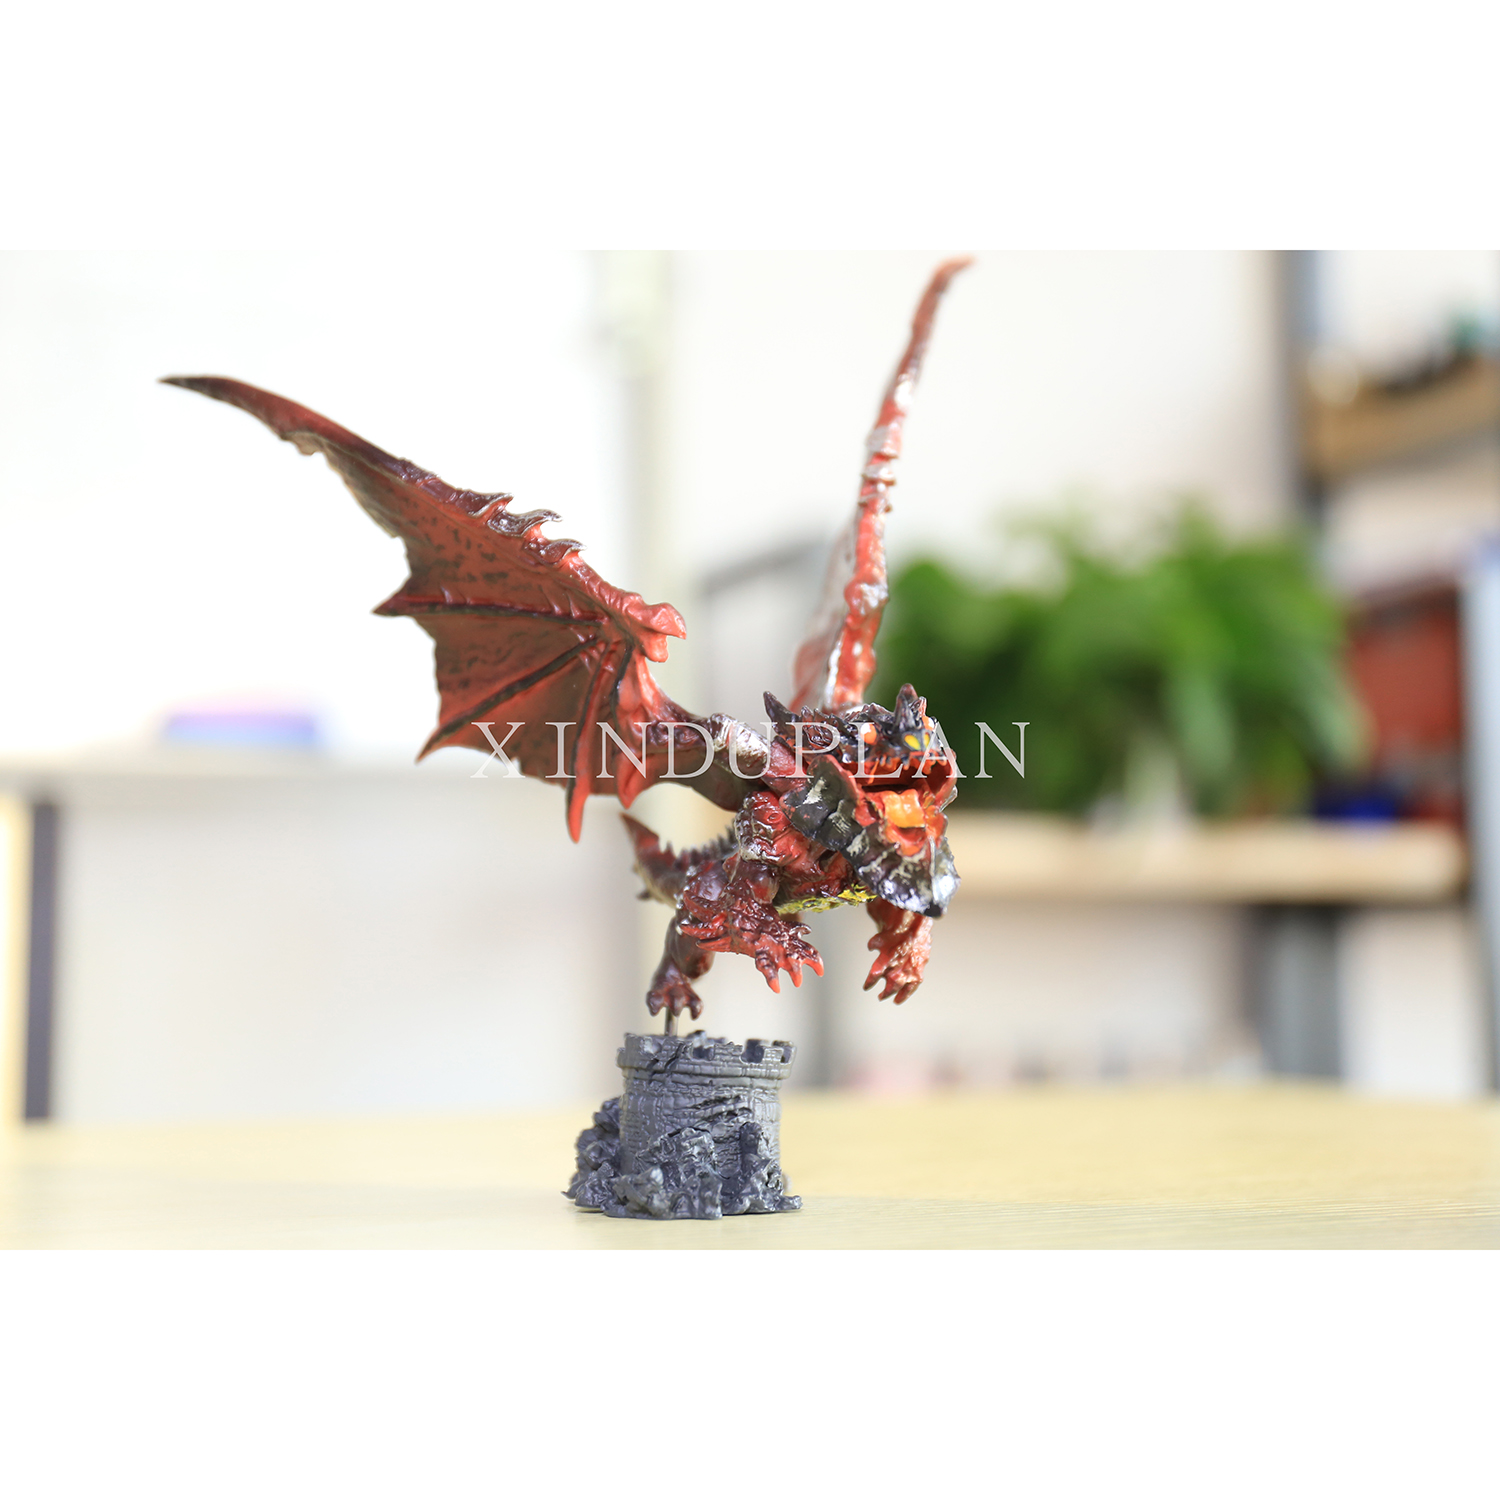 XINDUPLAN NEW Dota 2 Neltharion Deathwing Dragon Action Figure Toys Cartoon Game 20cm PVC Kids Gifts Collection Model 0316<br>